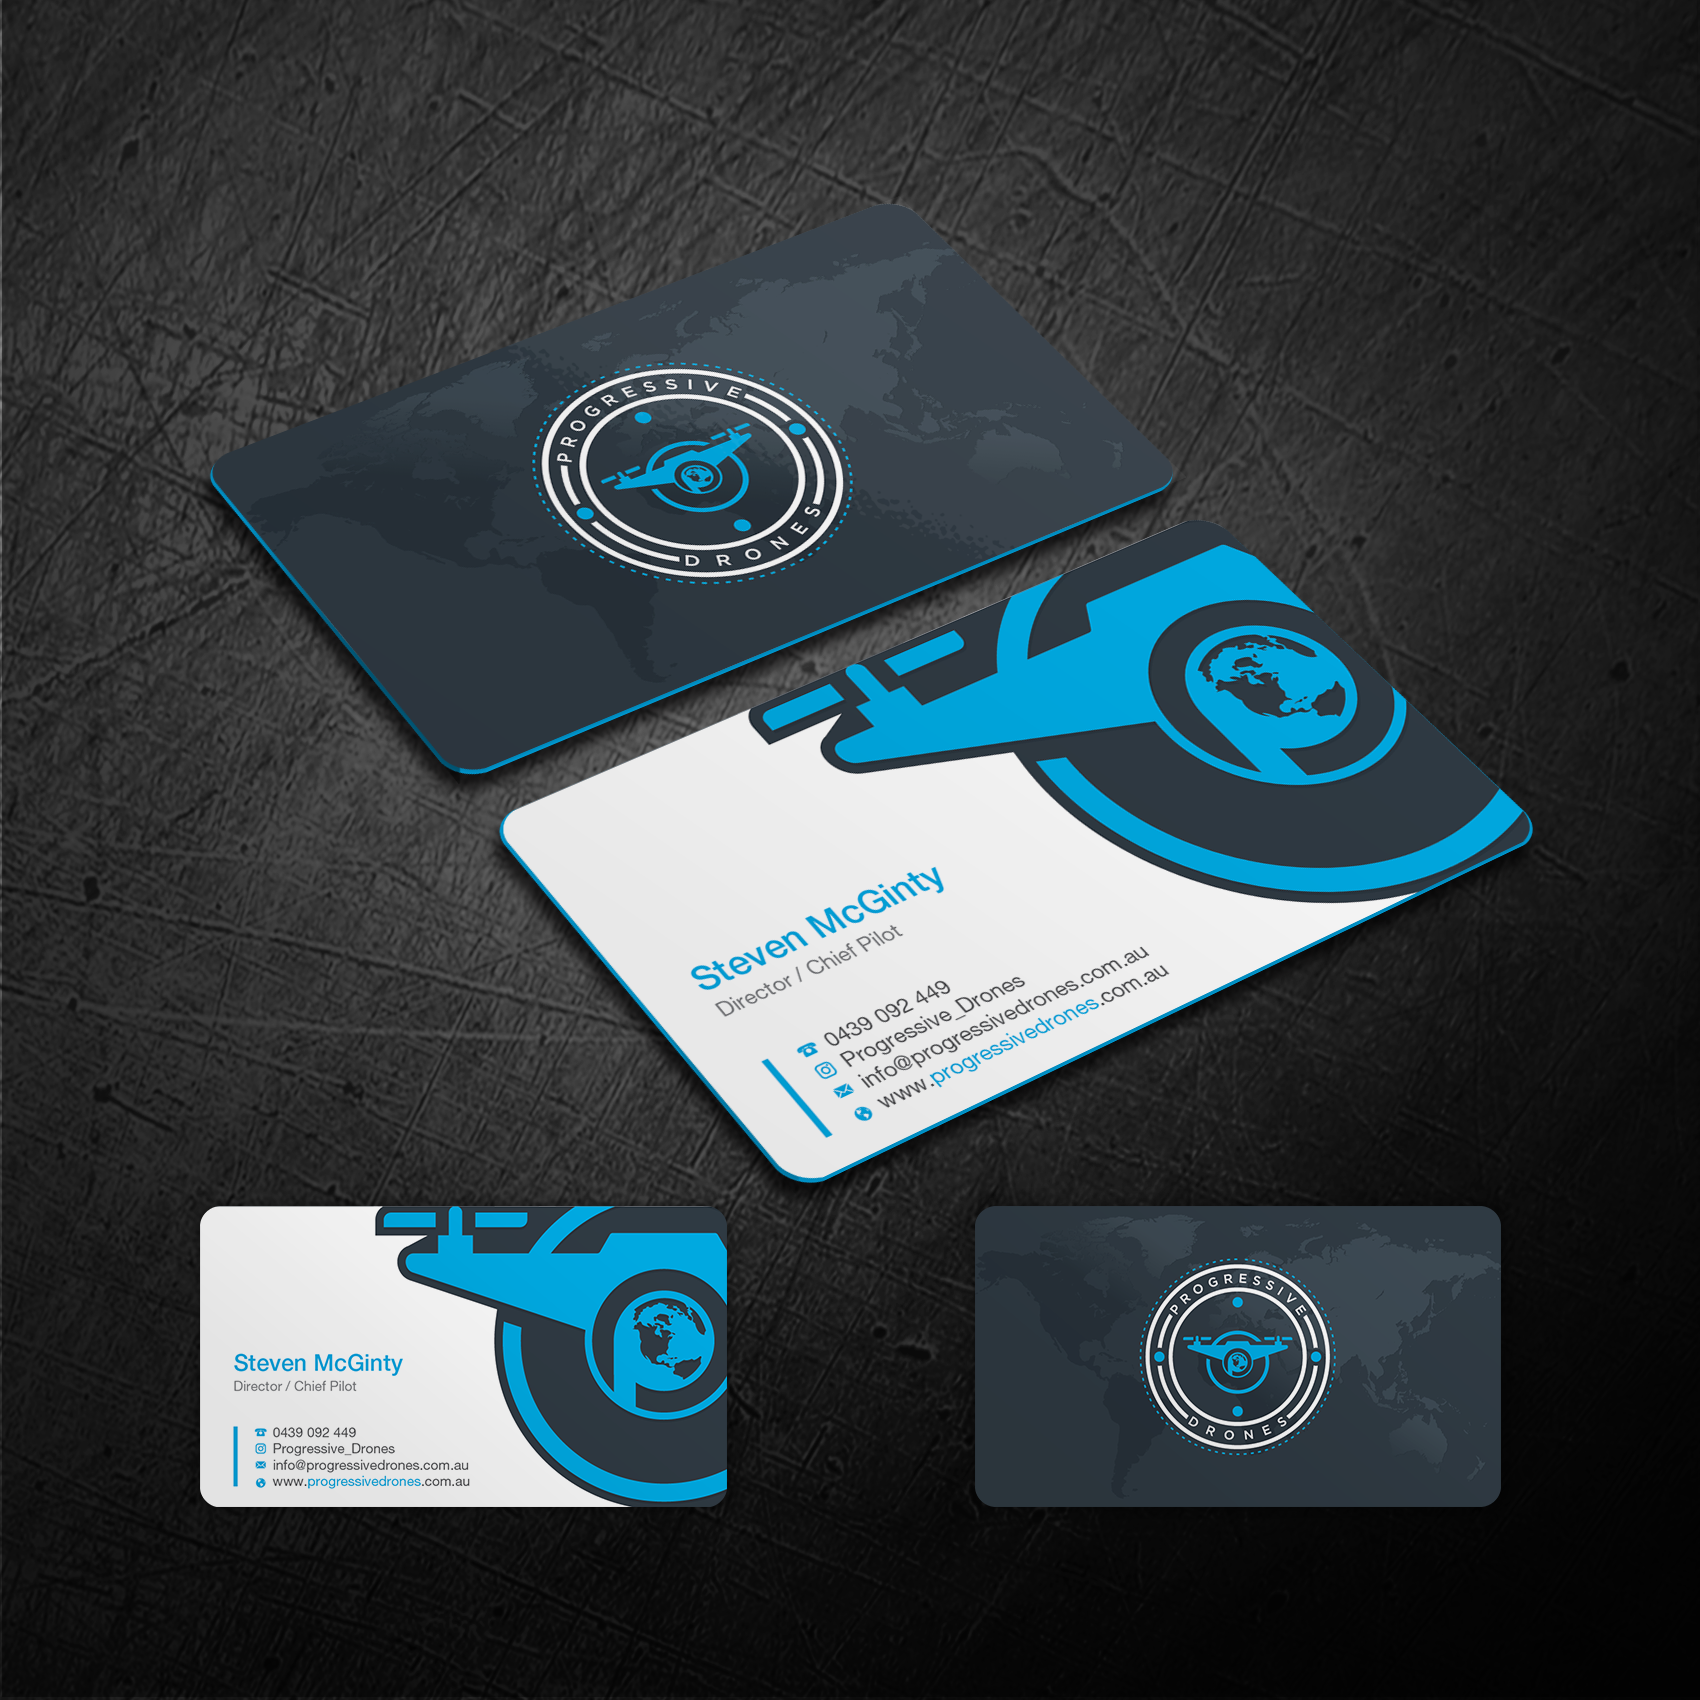 Design an AMAZING Business Card for our Global Drone Company Progressive Drones